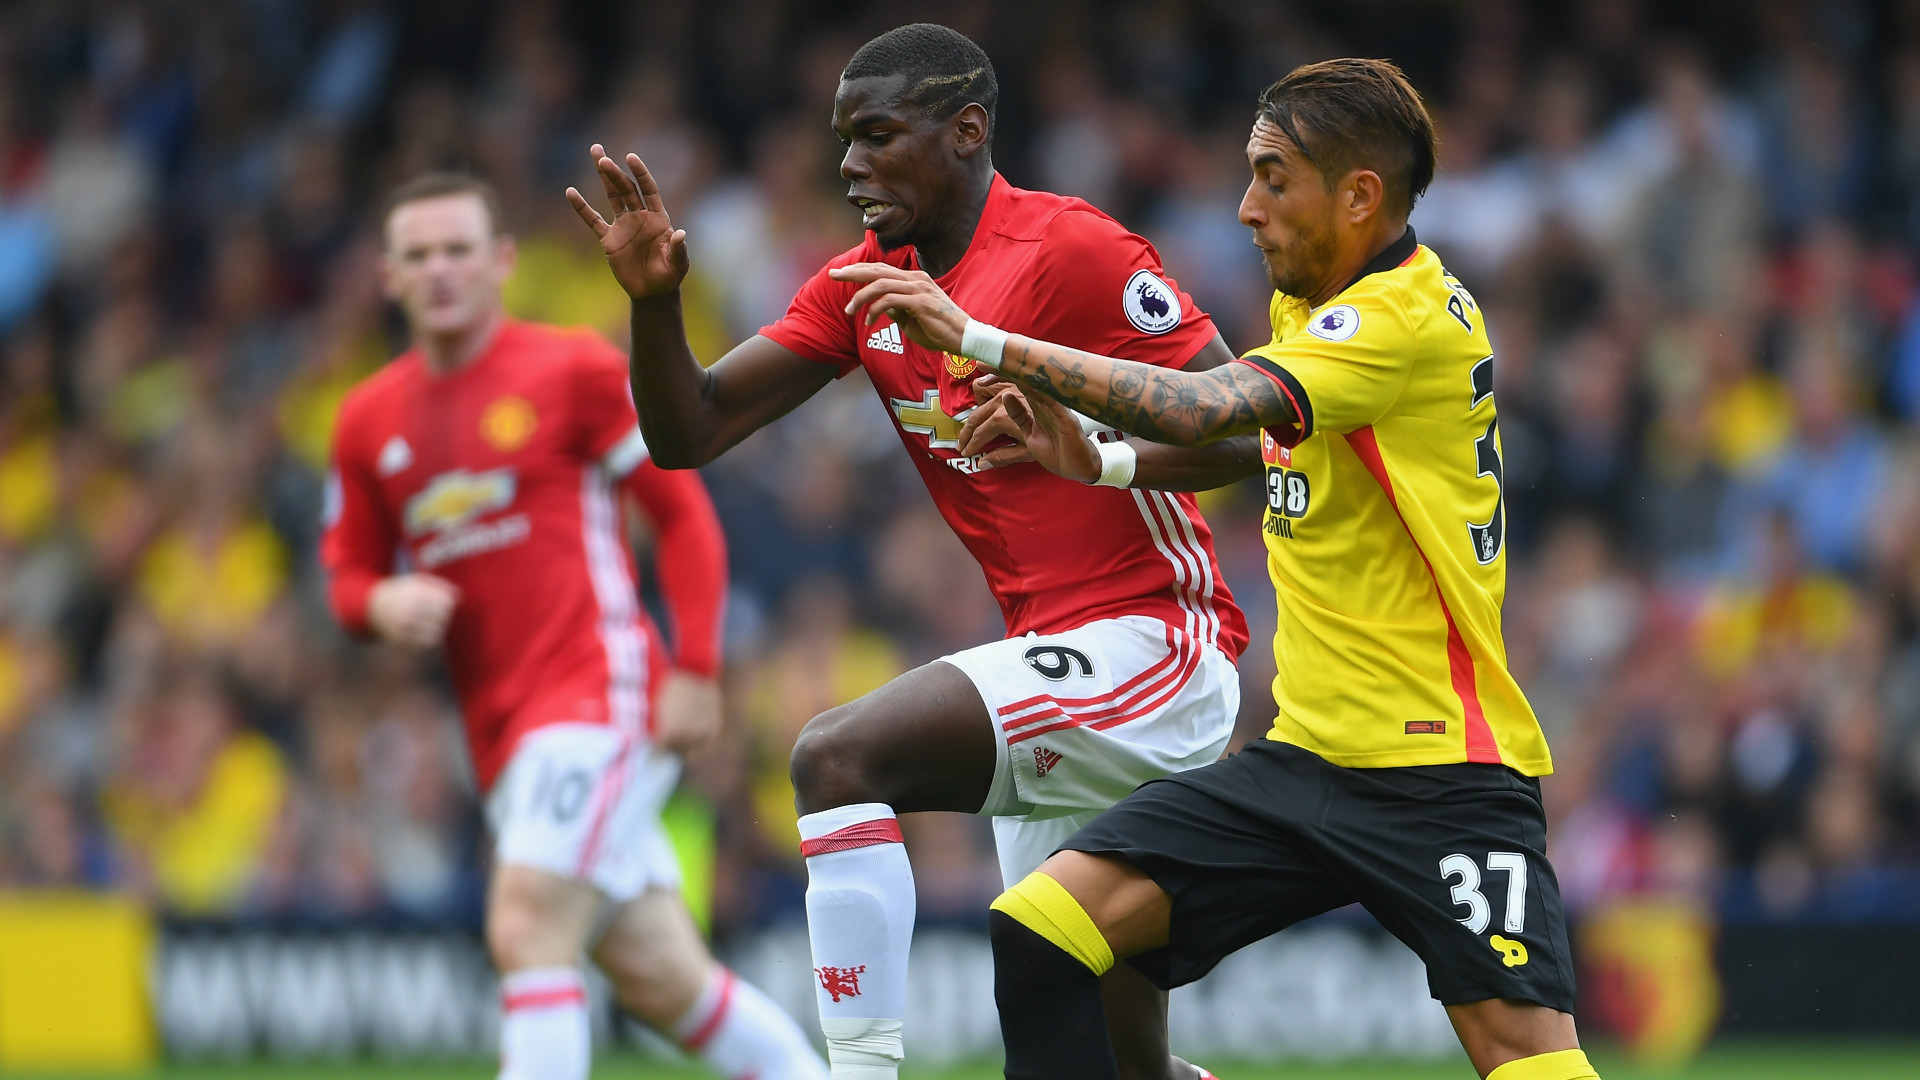 Paul Pogba and Roberto Pereyra, Watford v Man Utd, 2018